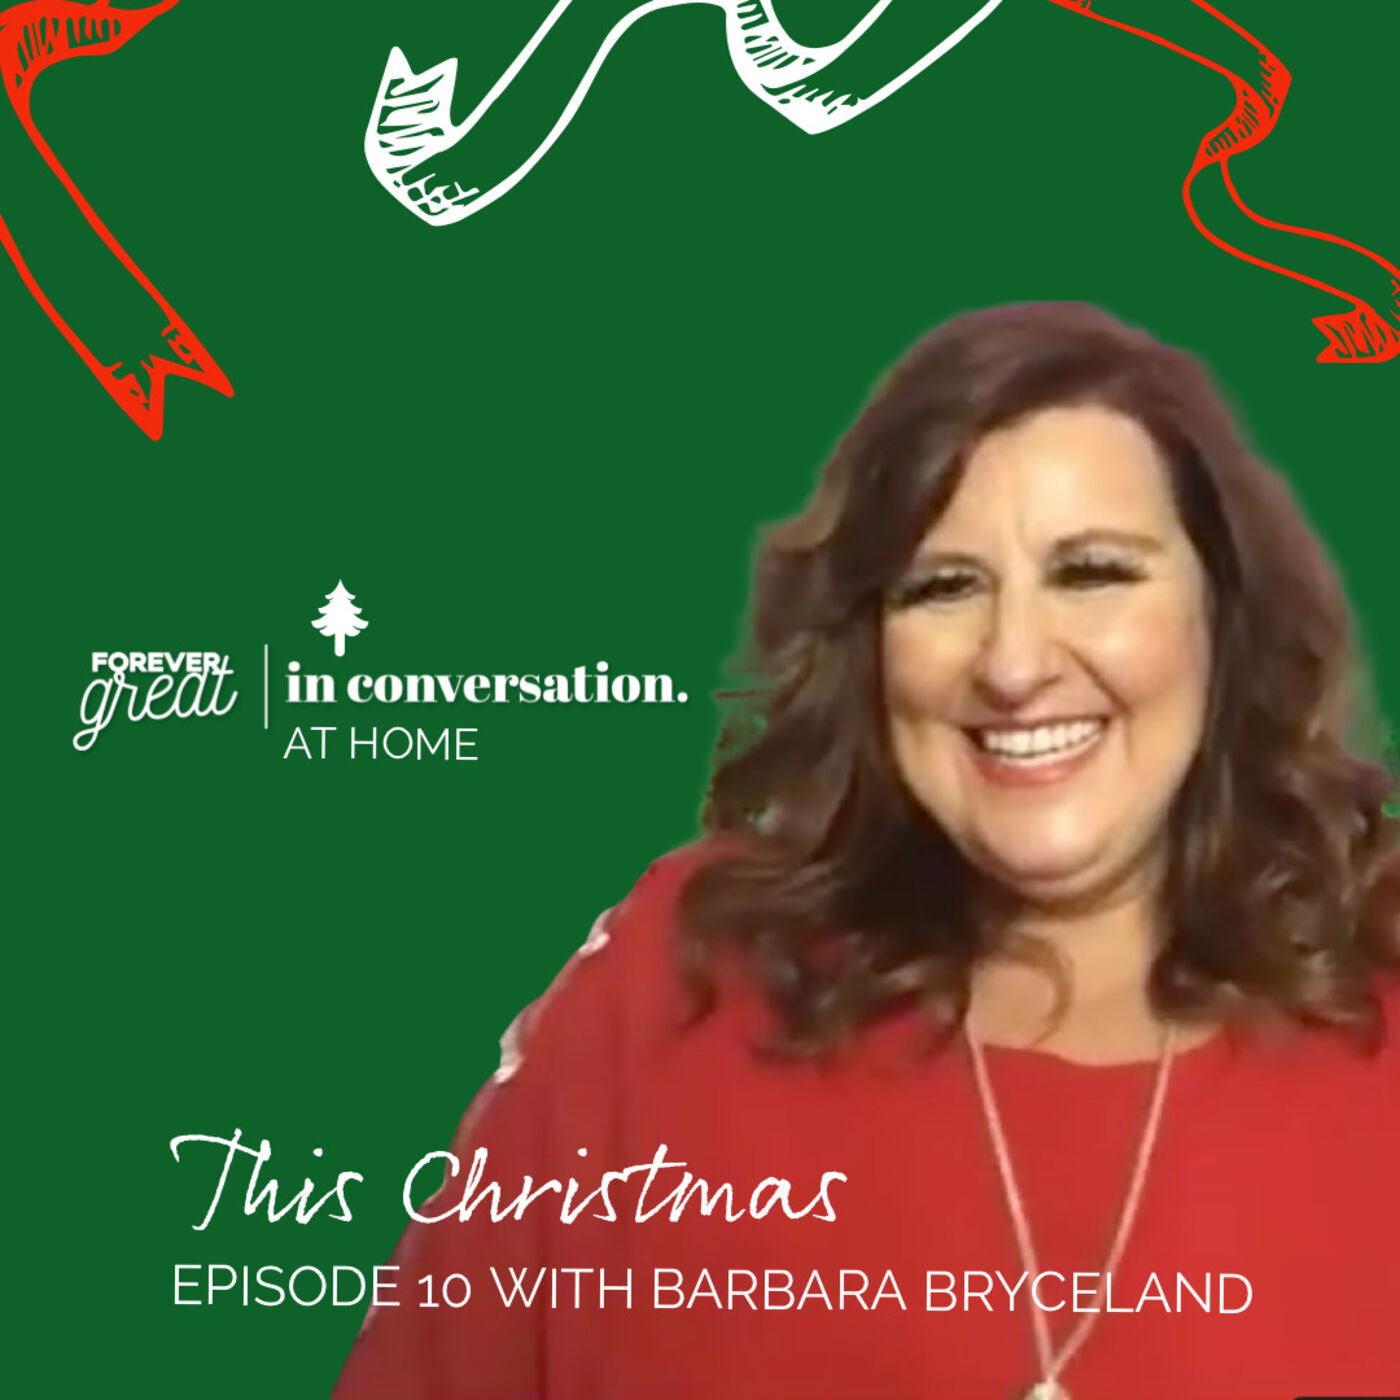 Forever Great in Conversation with Barbara Bryceland | Season 1 | Episode 10 | Christmas Special 🎬 🎄